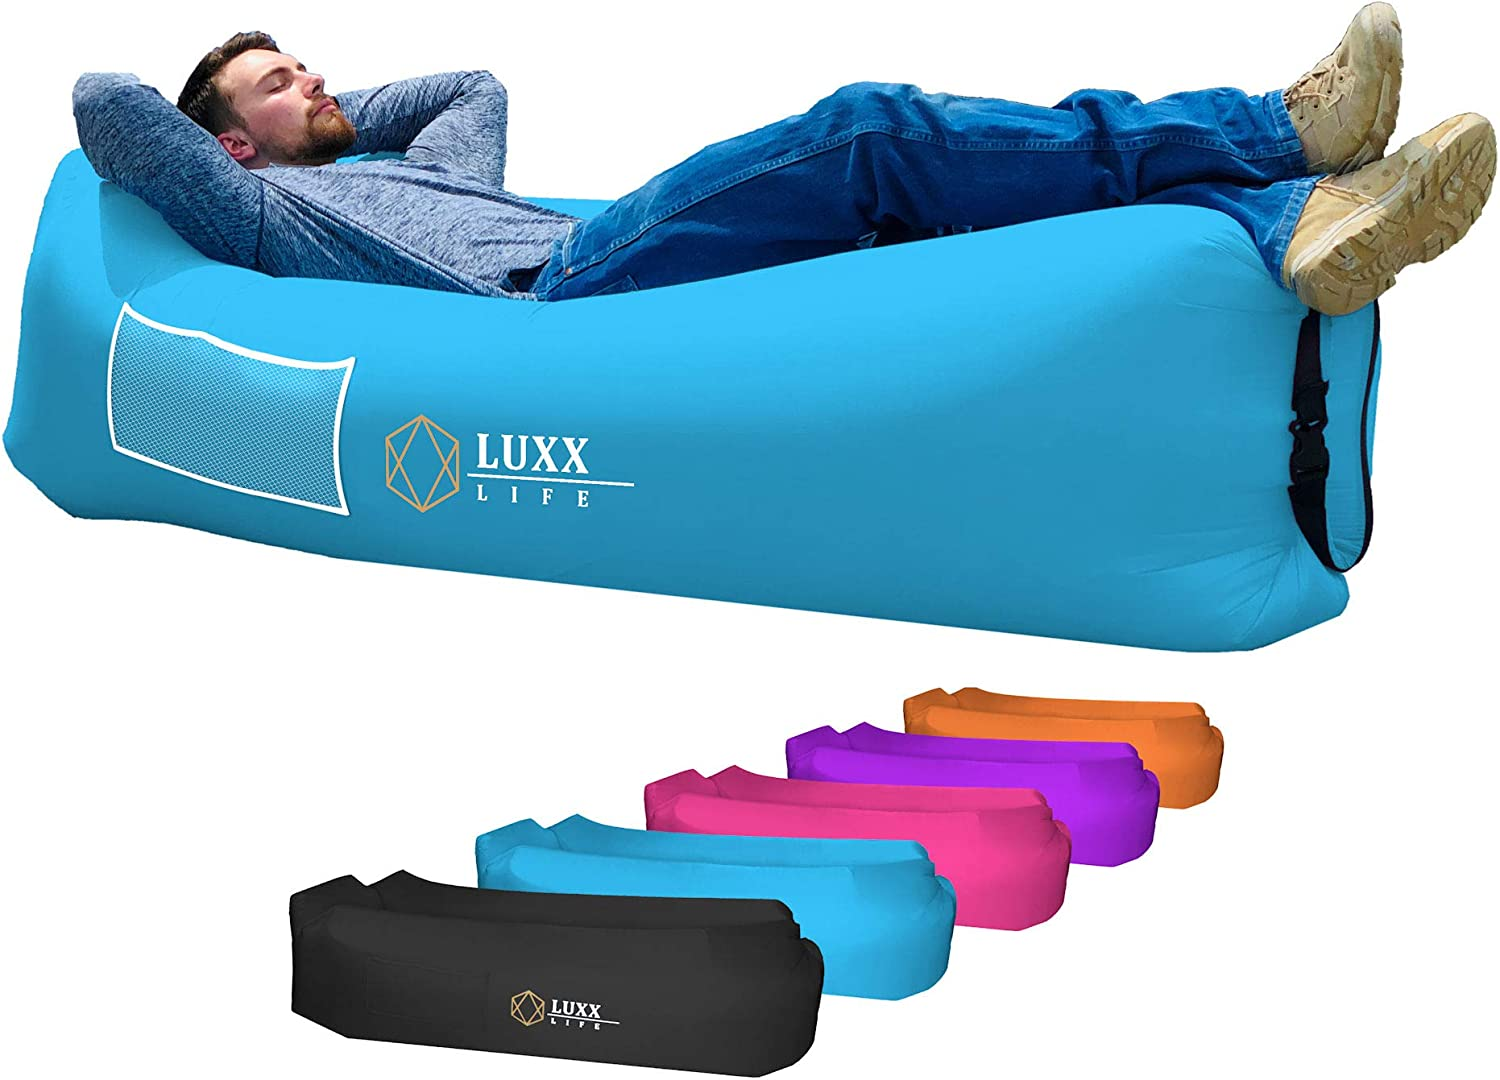 LUXX LIFE - Inflatable Lounger Air Sofa Portable Hammock - Camping, Hiking, Traveling, Park, Beach, Pool, Lakeside, Picnic, Festivals - Durable & Waterproof - Indoor/Outdoor Use, Pack of 1